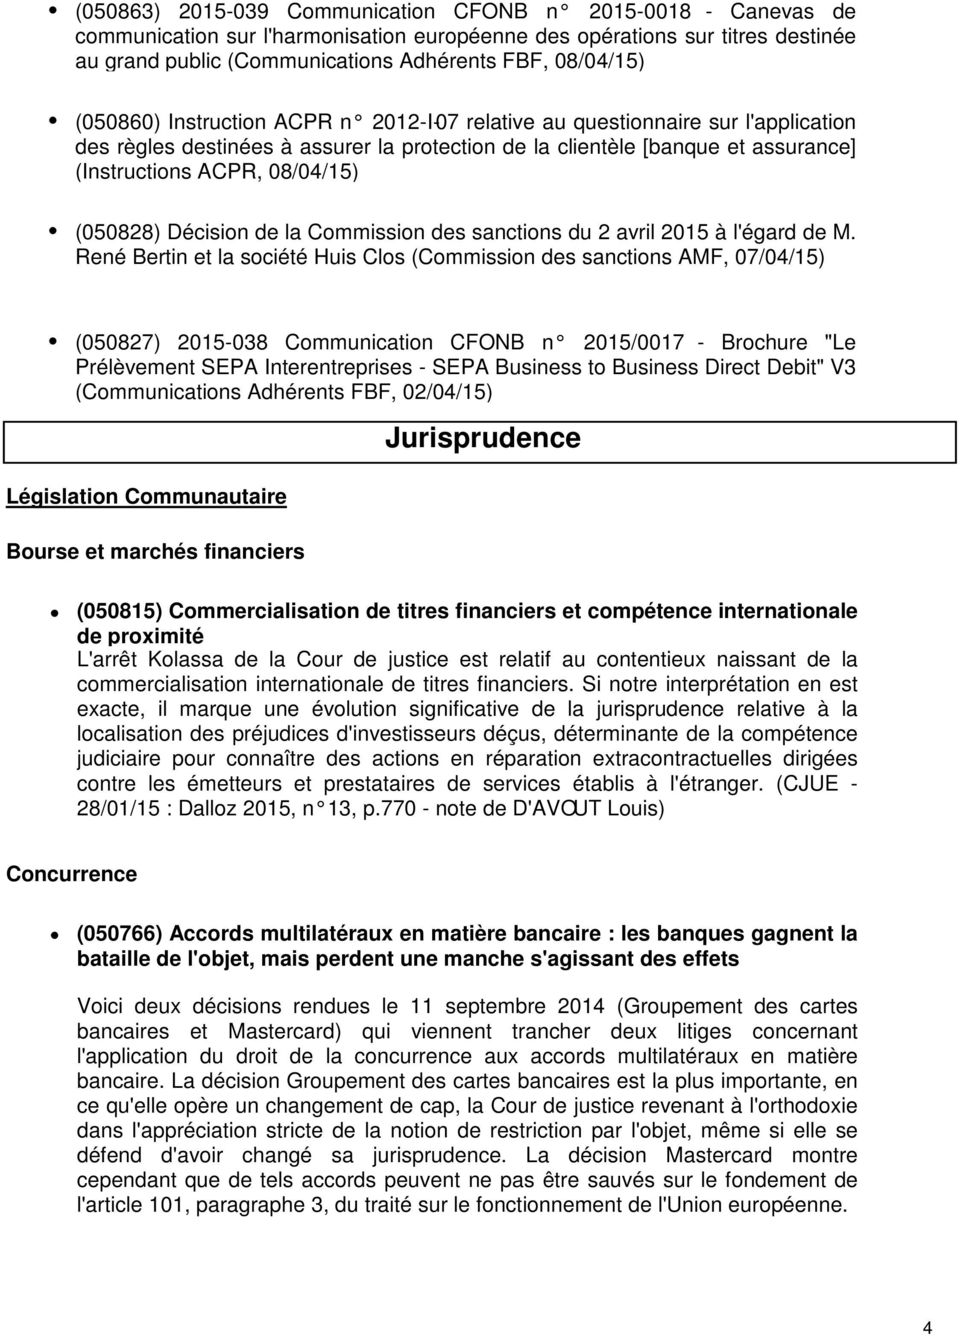 (050828) Décision de la Commission des sanctions du 2 avril 2015 à l'égard de M.